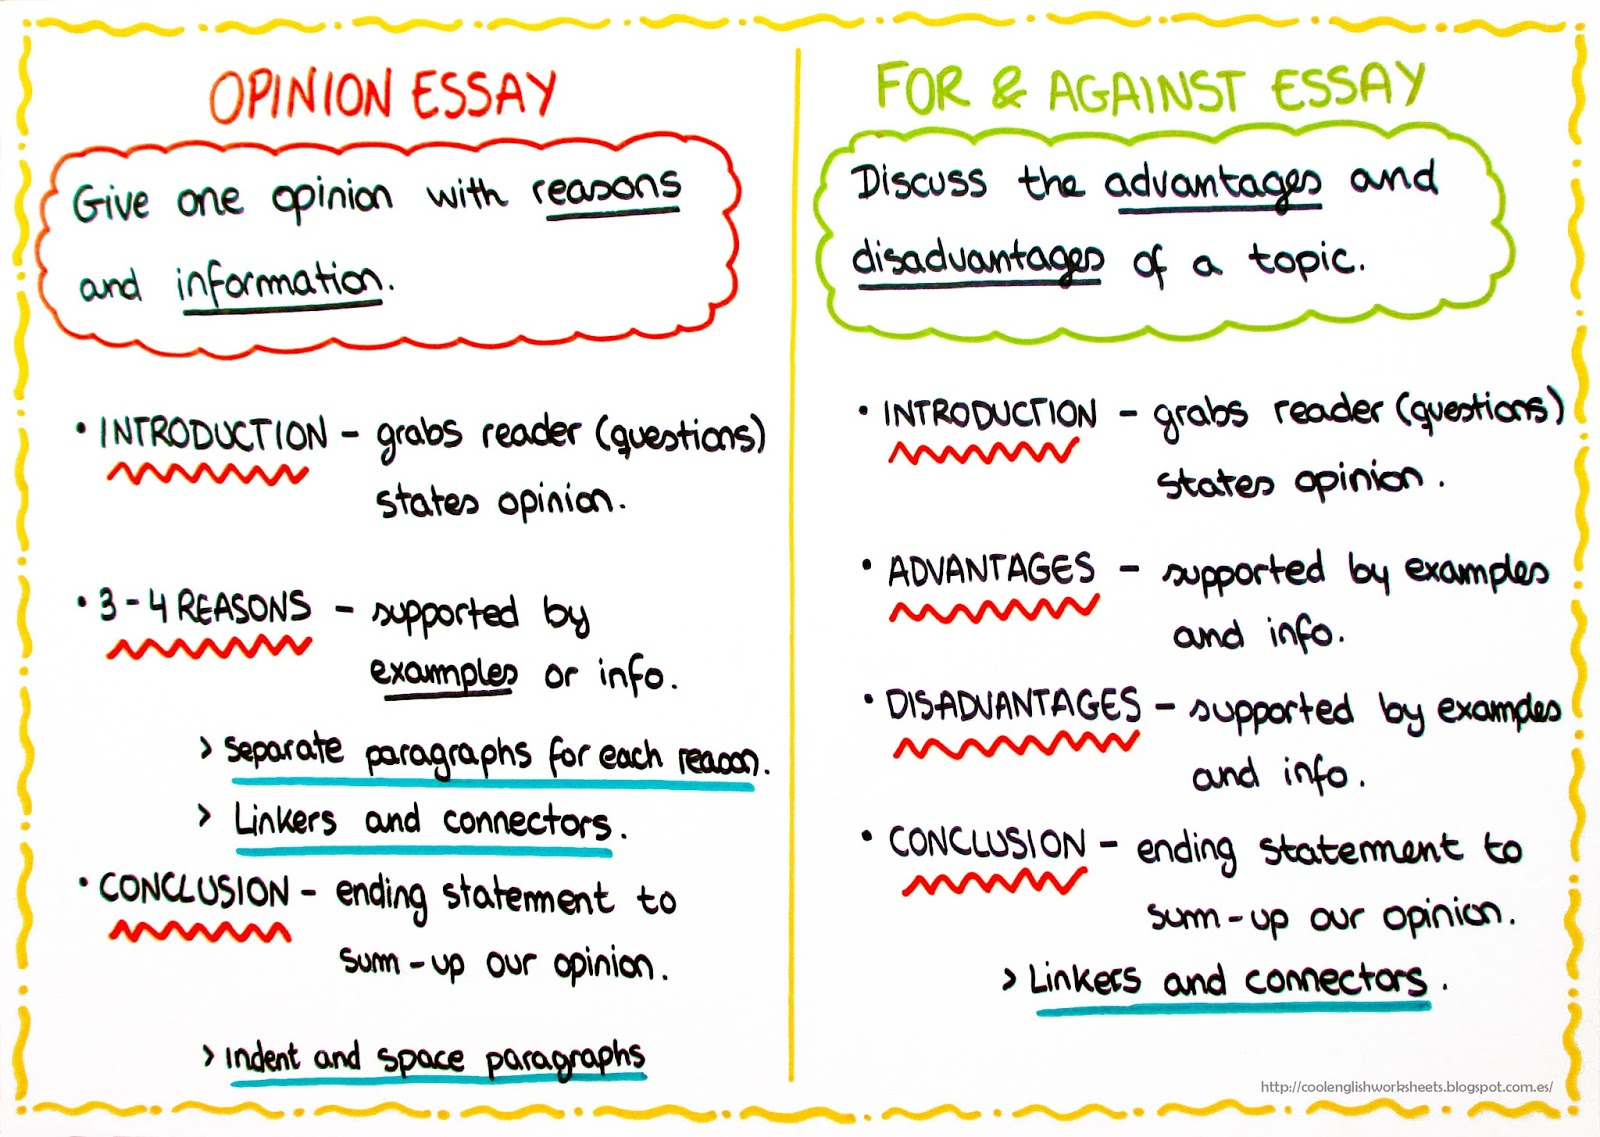 student essays against death penalty Ks2 science homework help against death penalty essay trustworthy essay writing service essays on globalization.